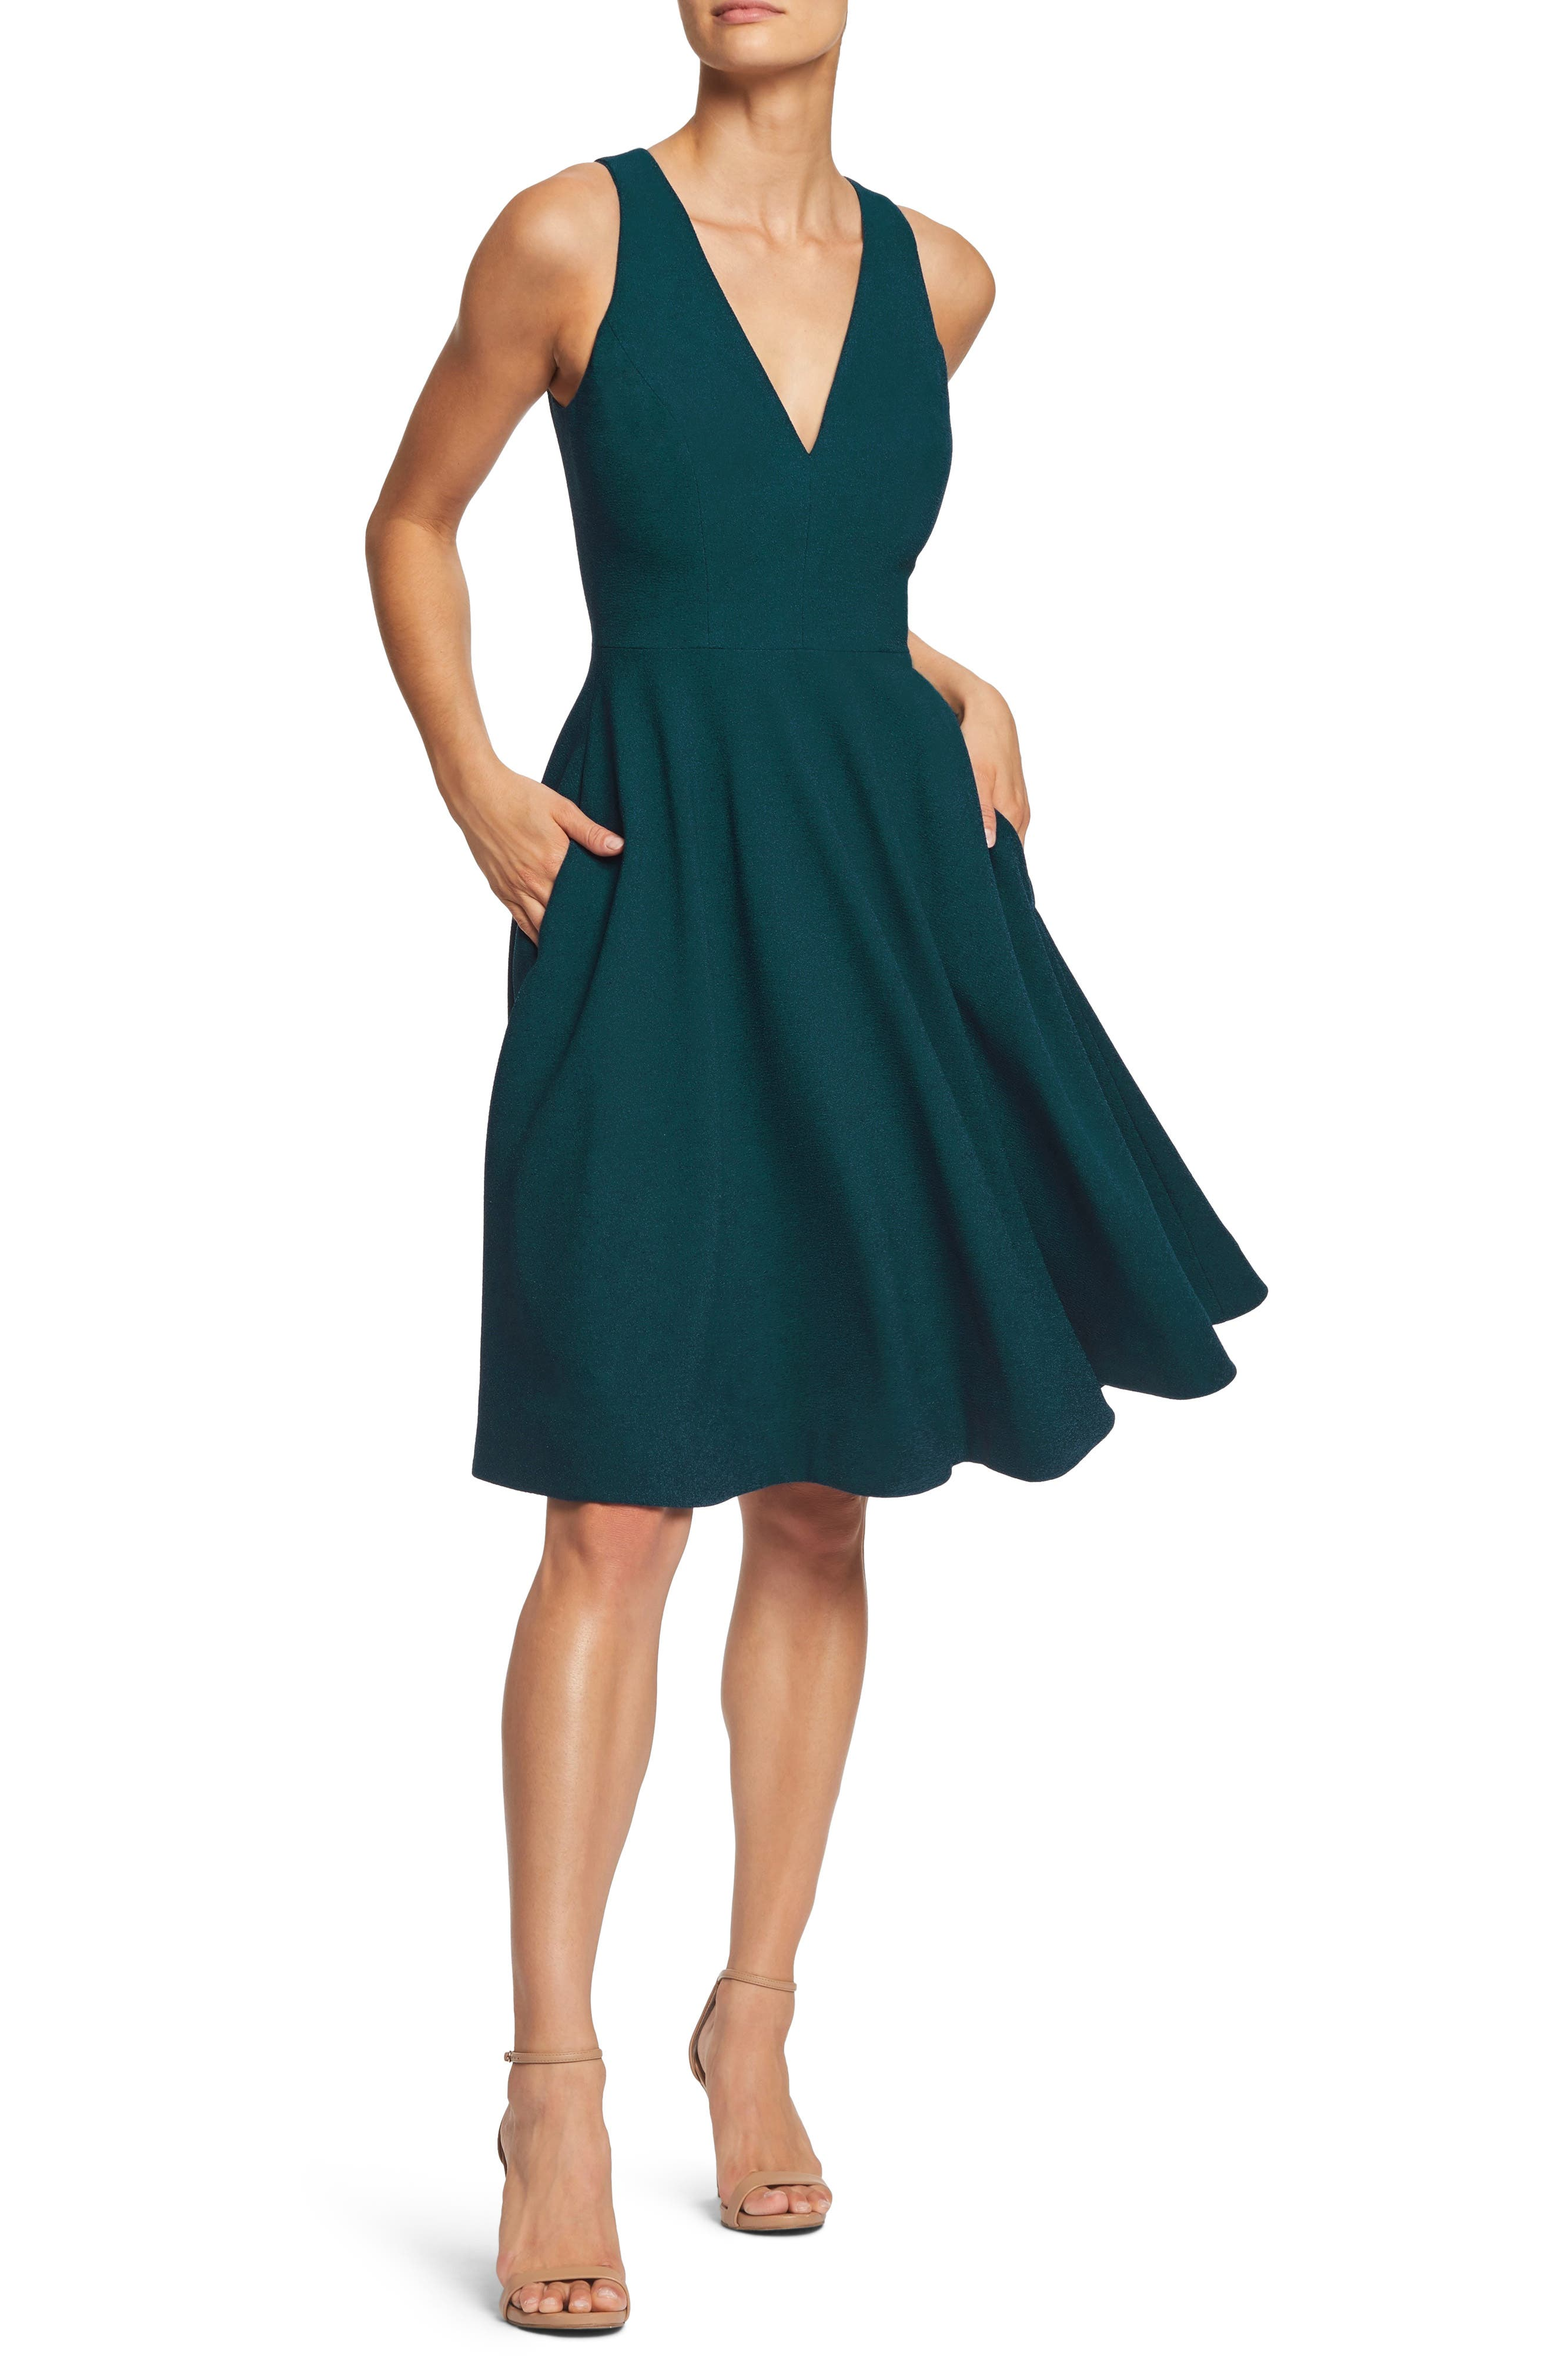 Women's Fit and Flare Dress